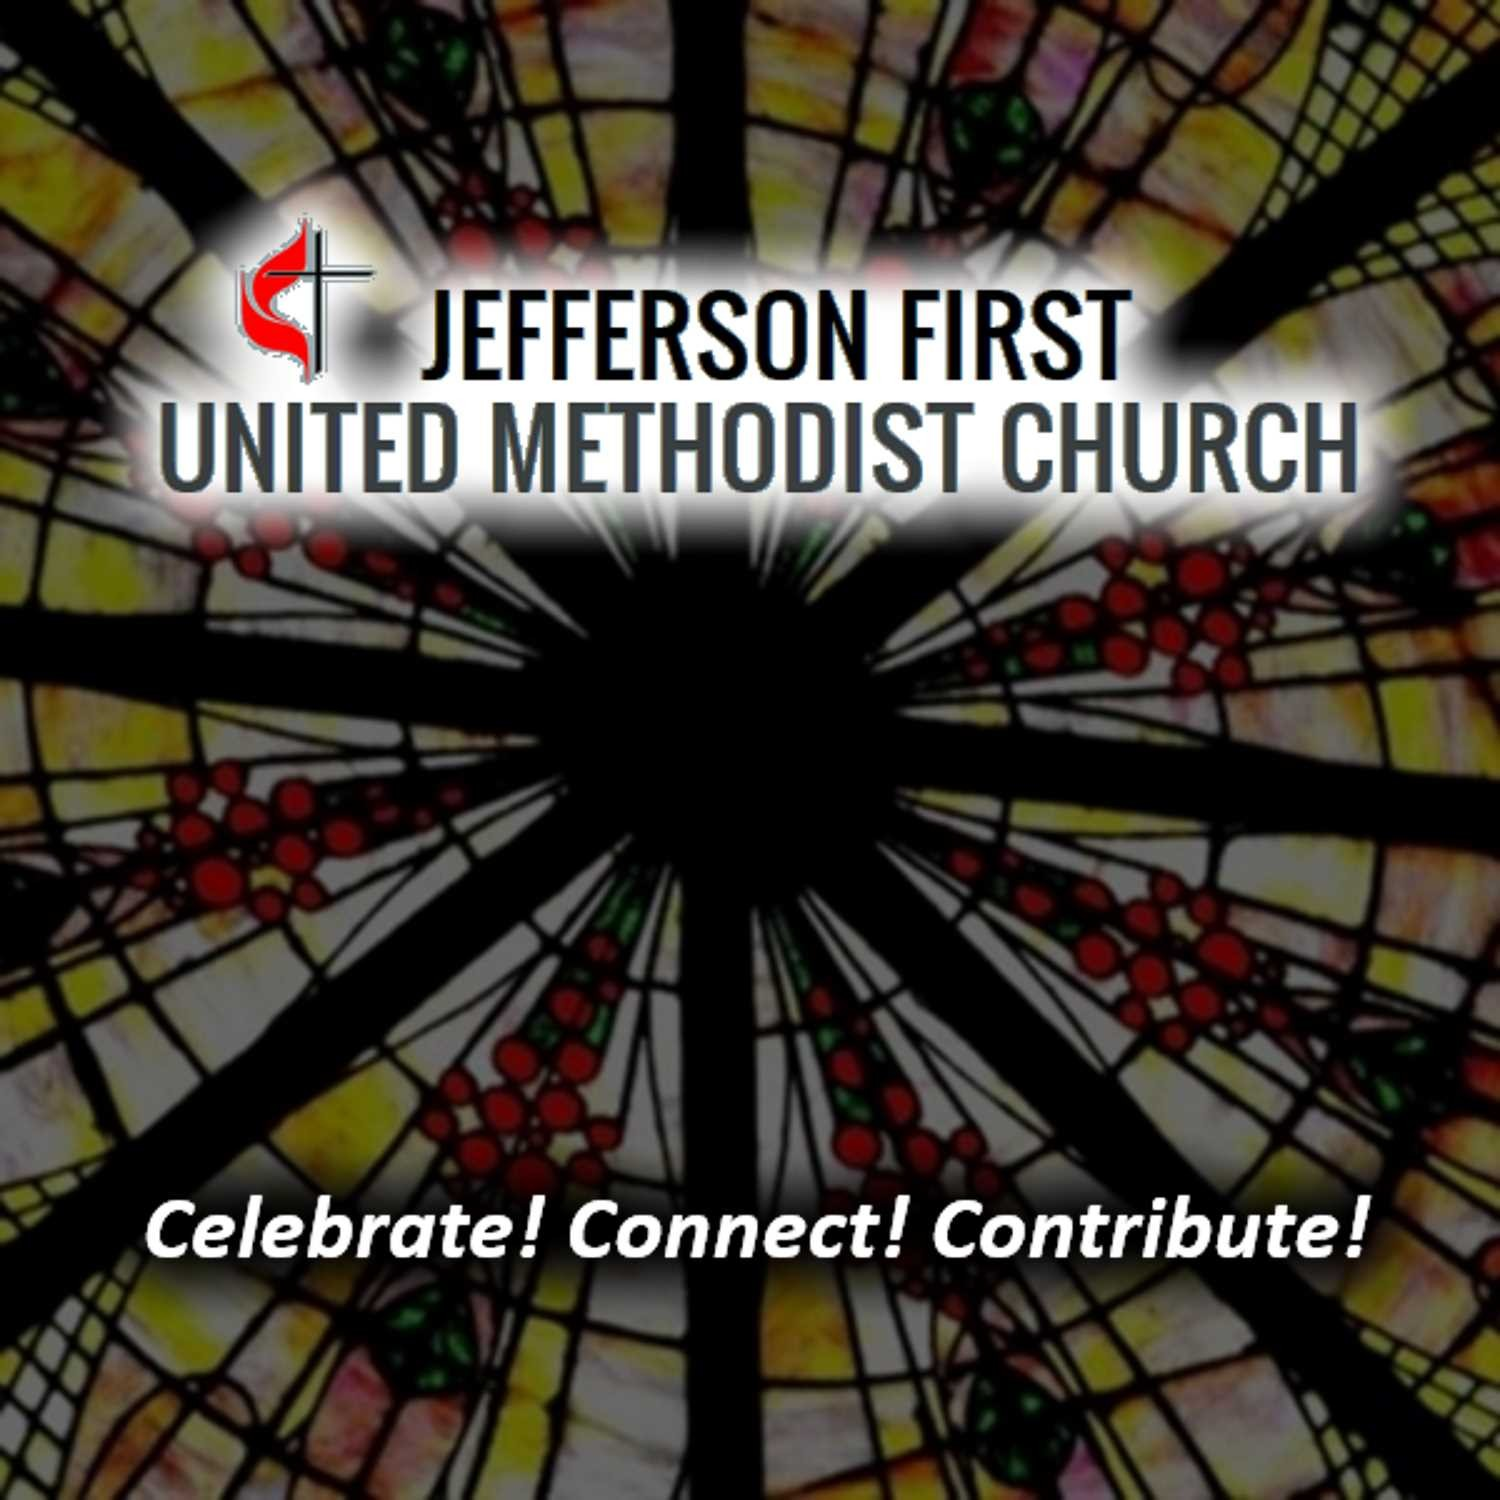 Jefferson First United Methodist Church's Podcast